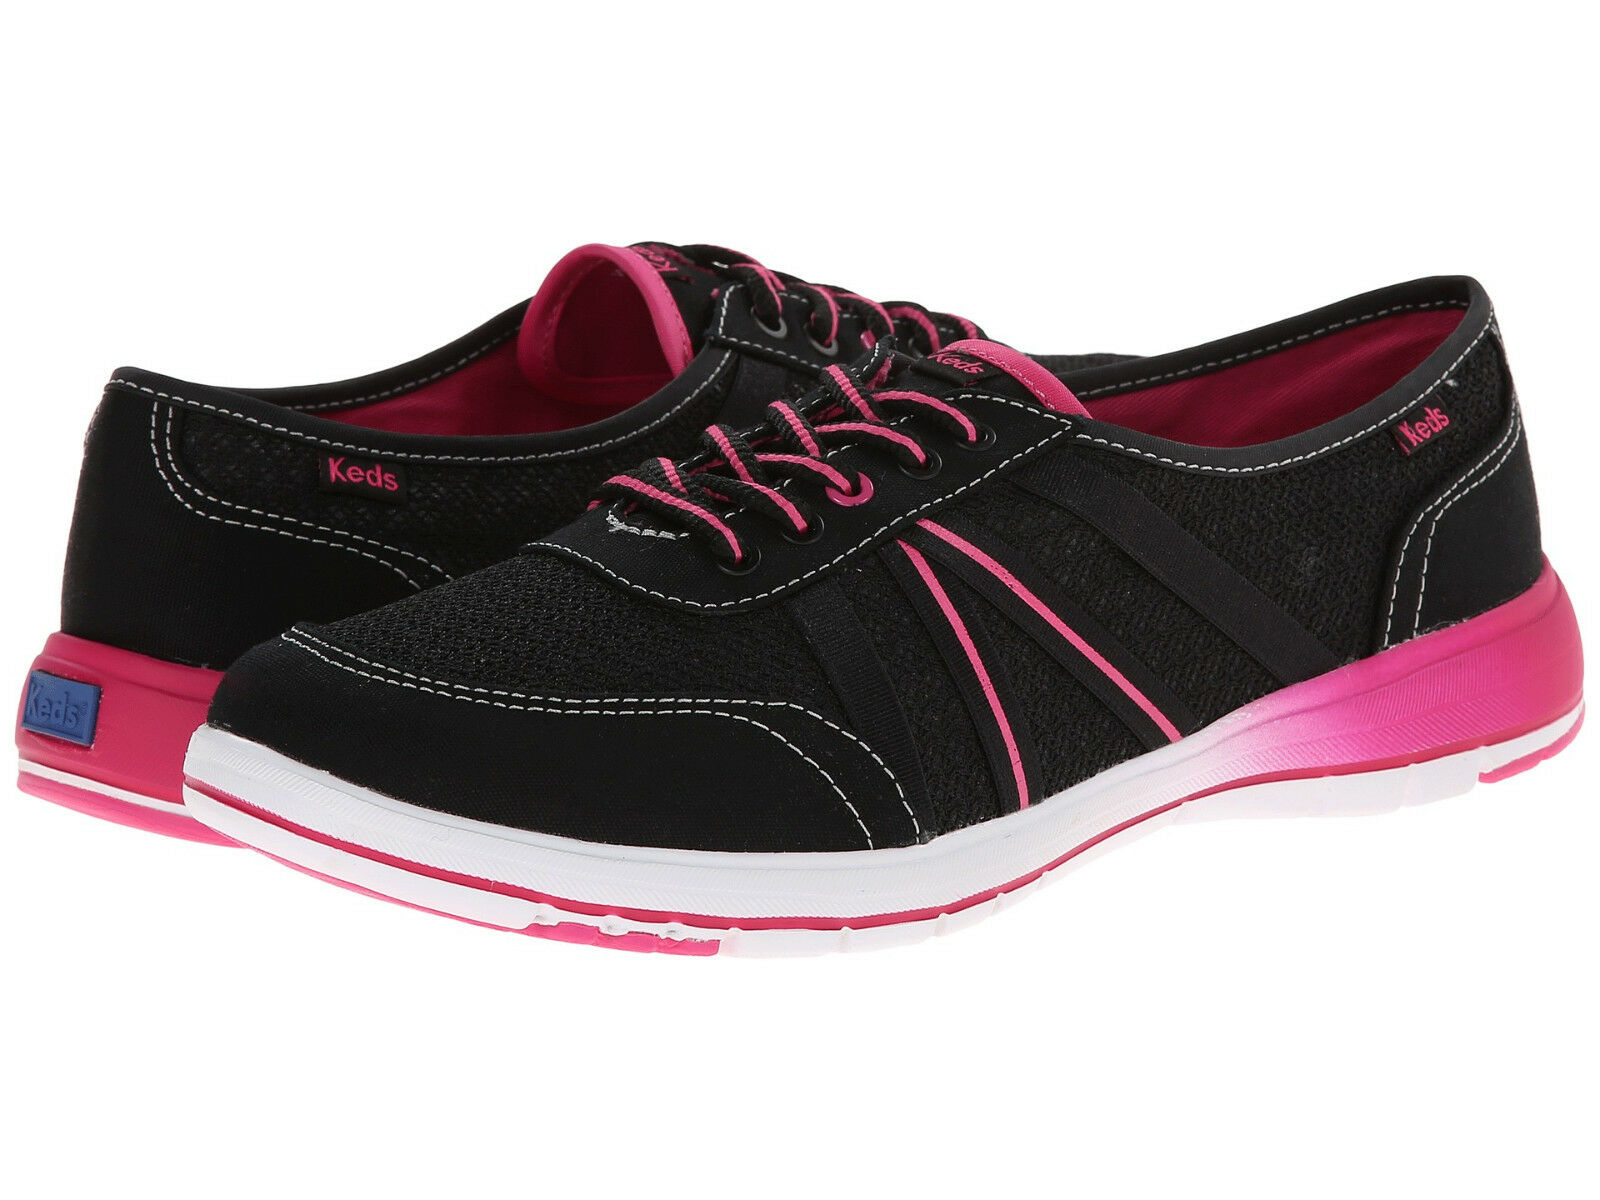 Keds Women's Fuse Black   Pink Comfort Sneakers - Assorted Sizes